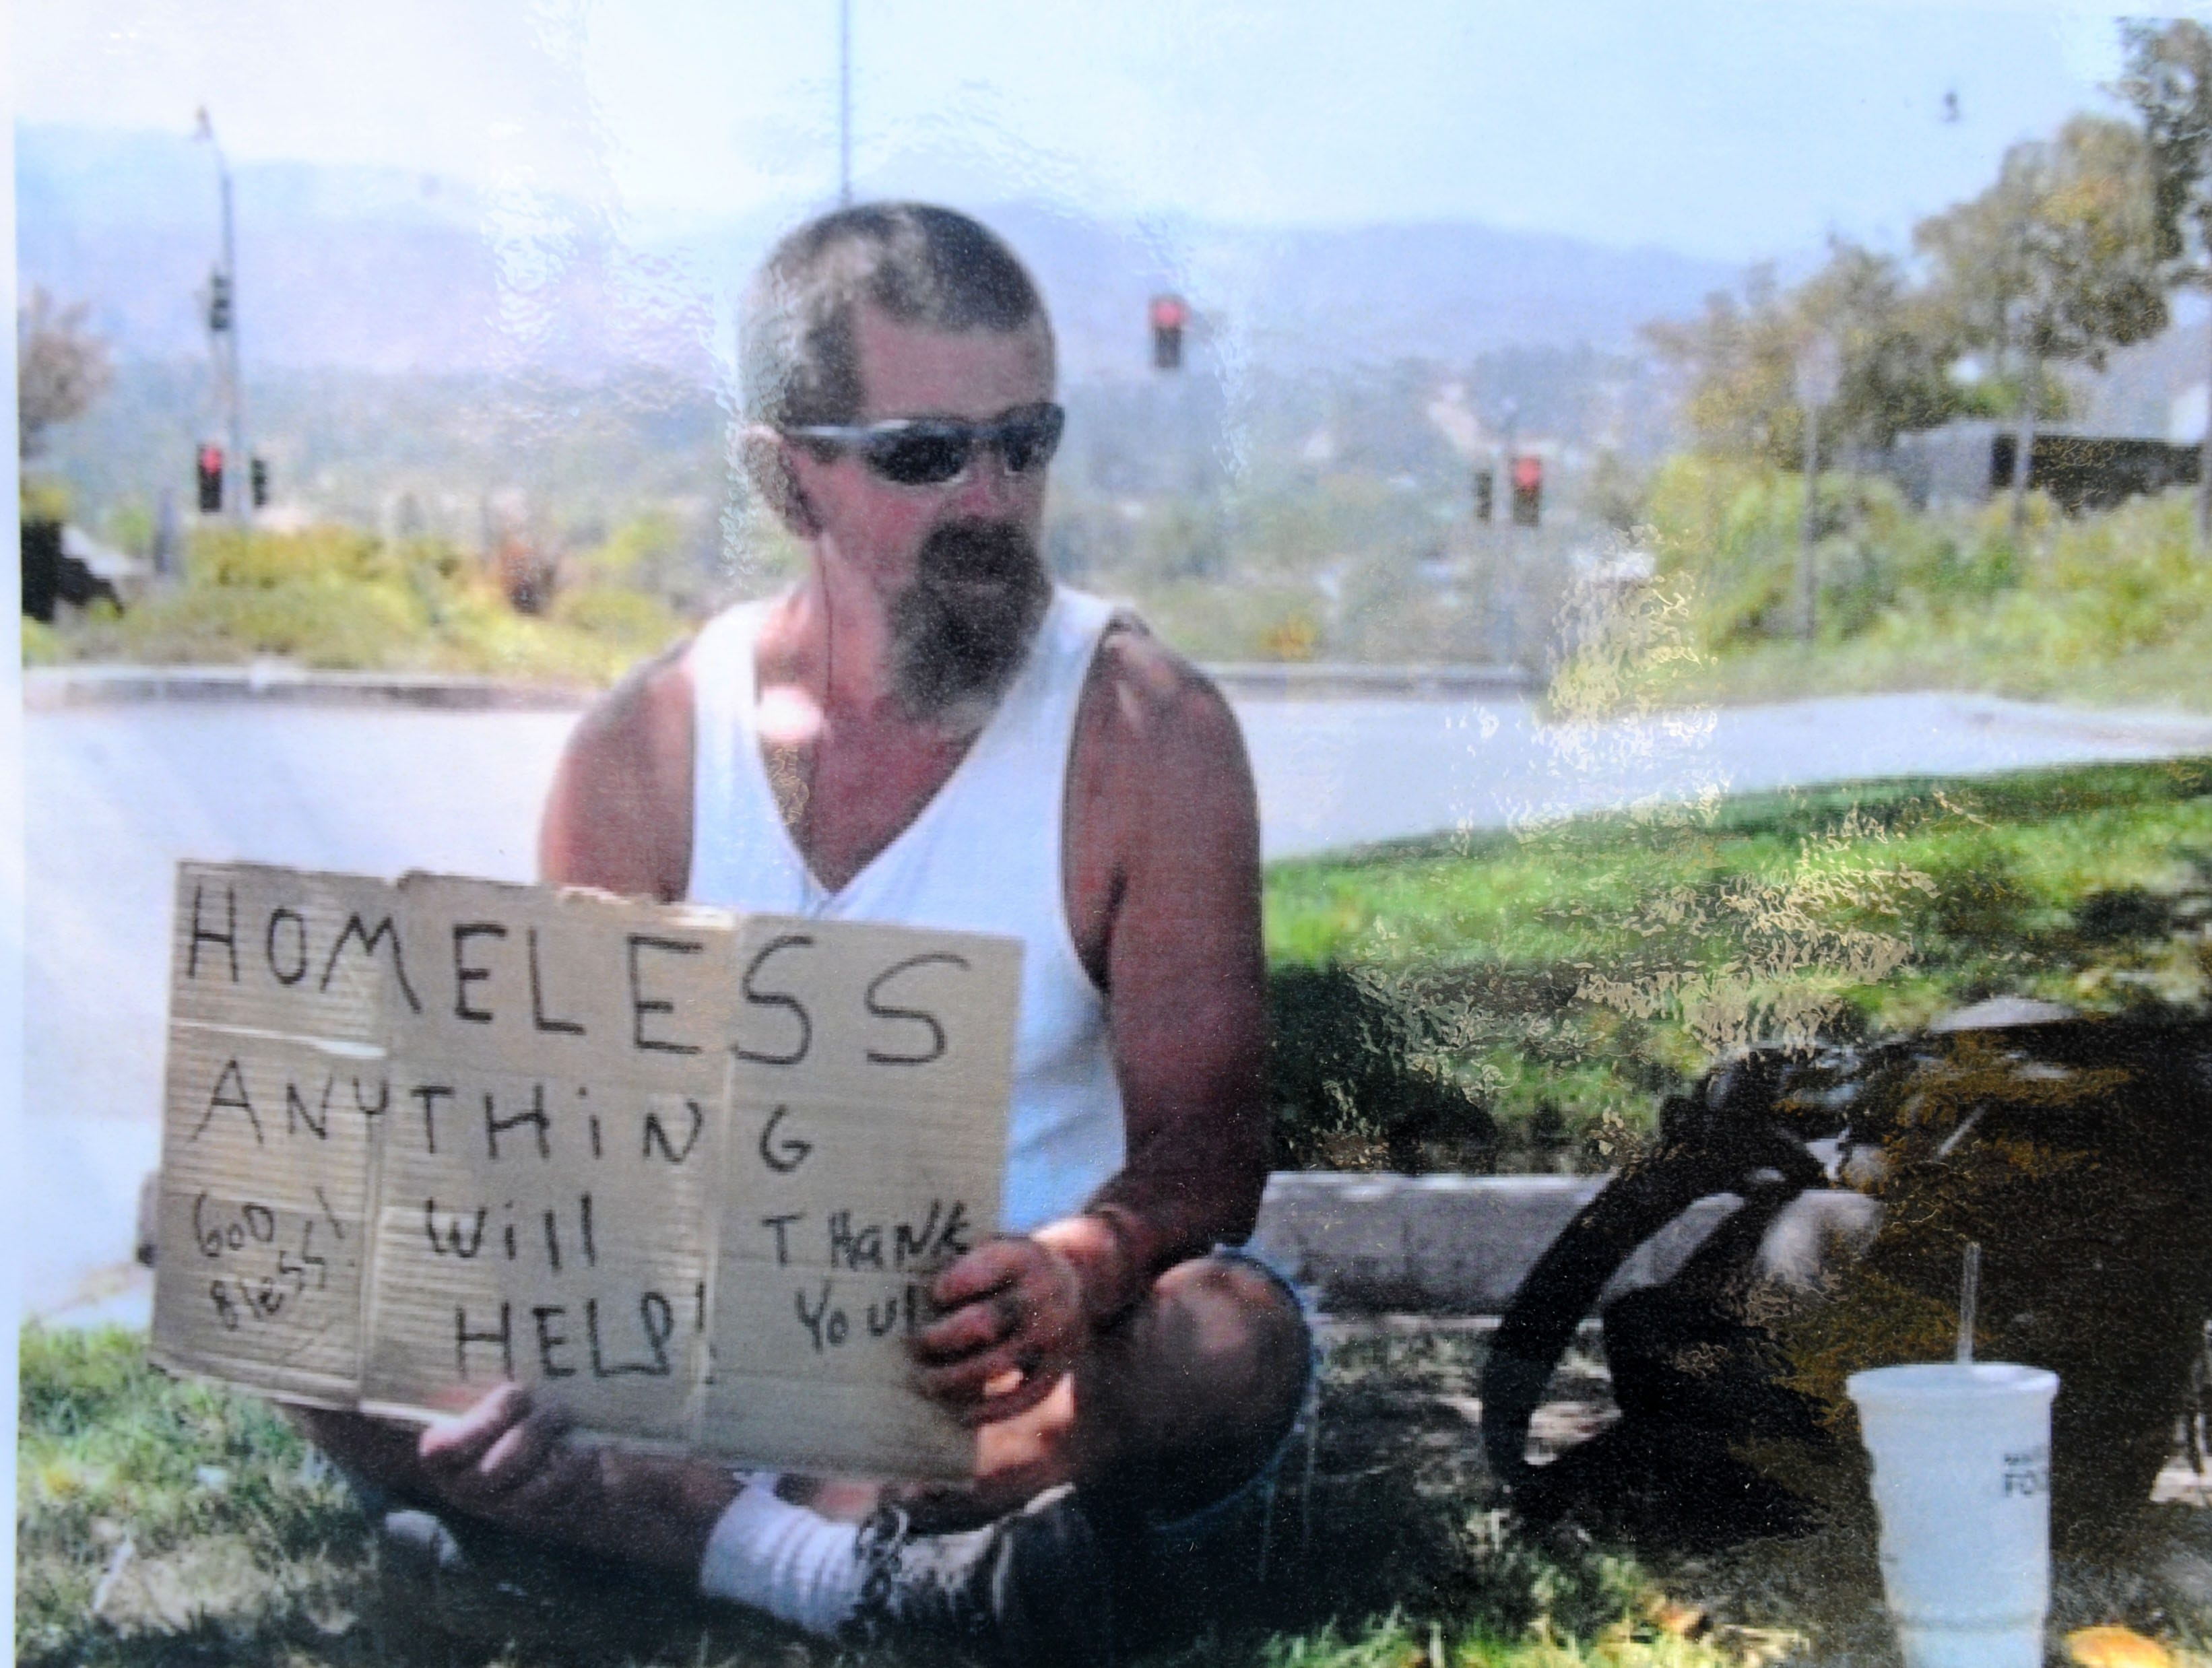 The Simi Valley Samaritan Center on Wednesday held a memorial service for Gerald Munyon, who was run over while sleeping in an alley in February. Munyon had been homeless for about 12 years.